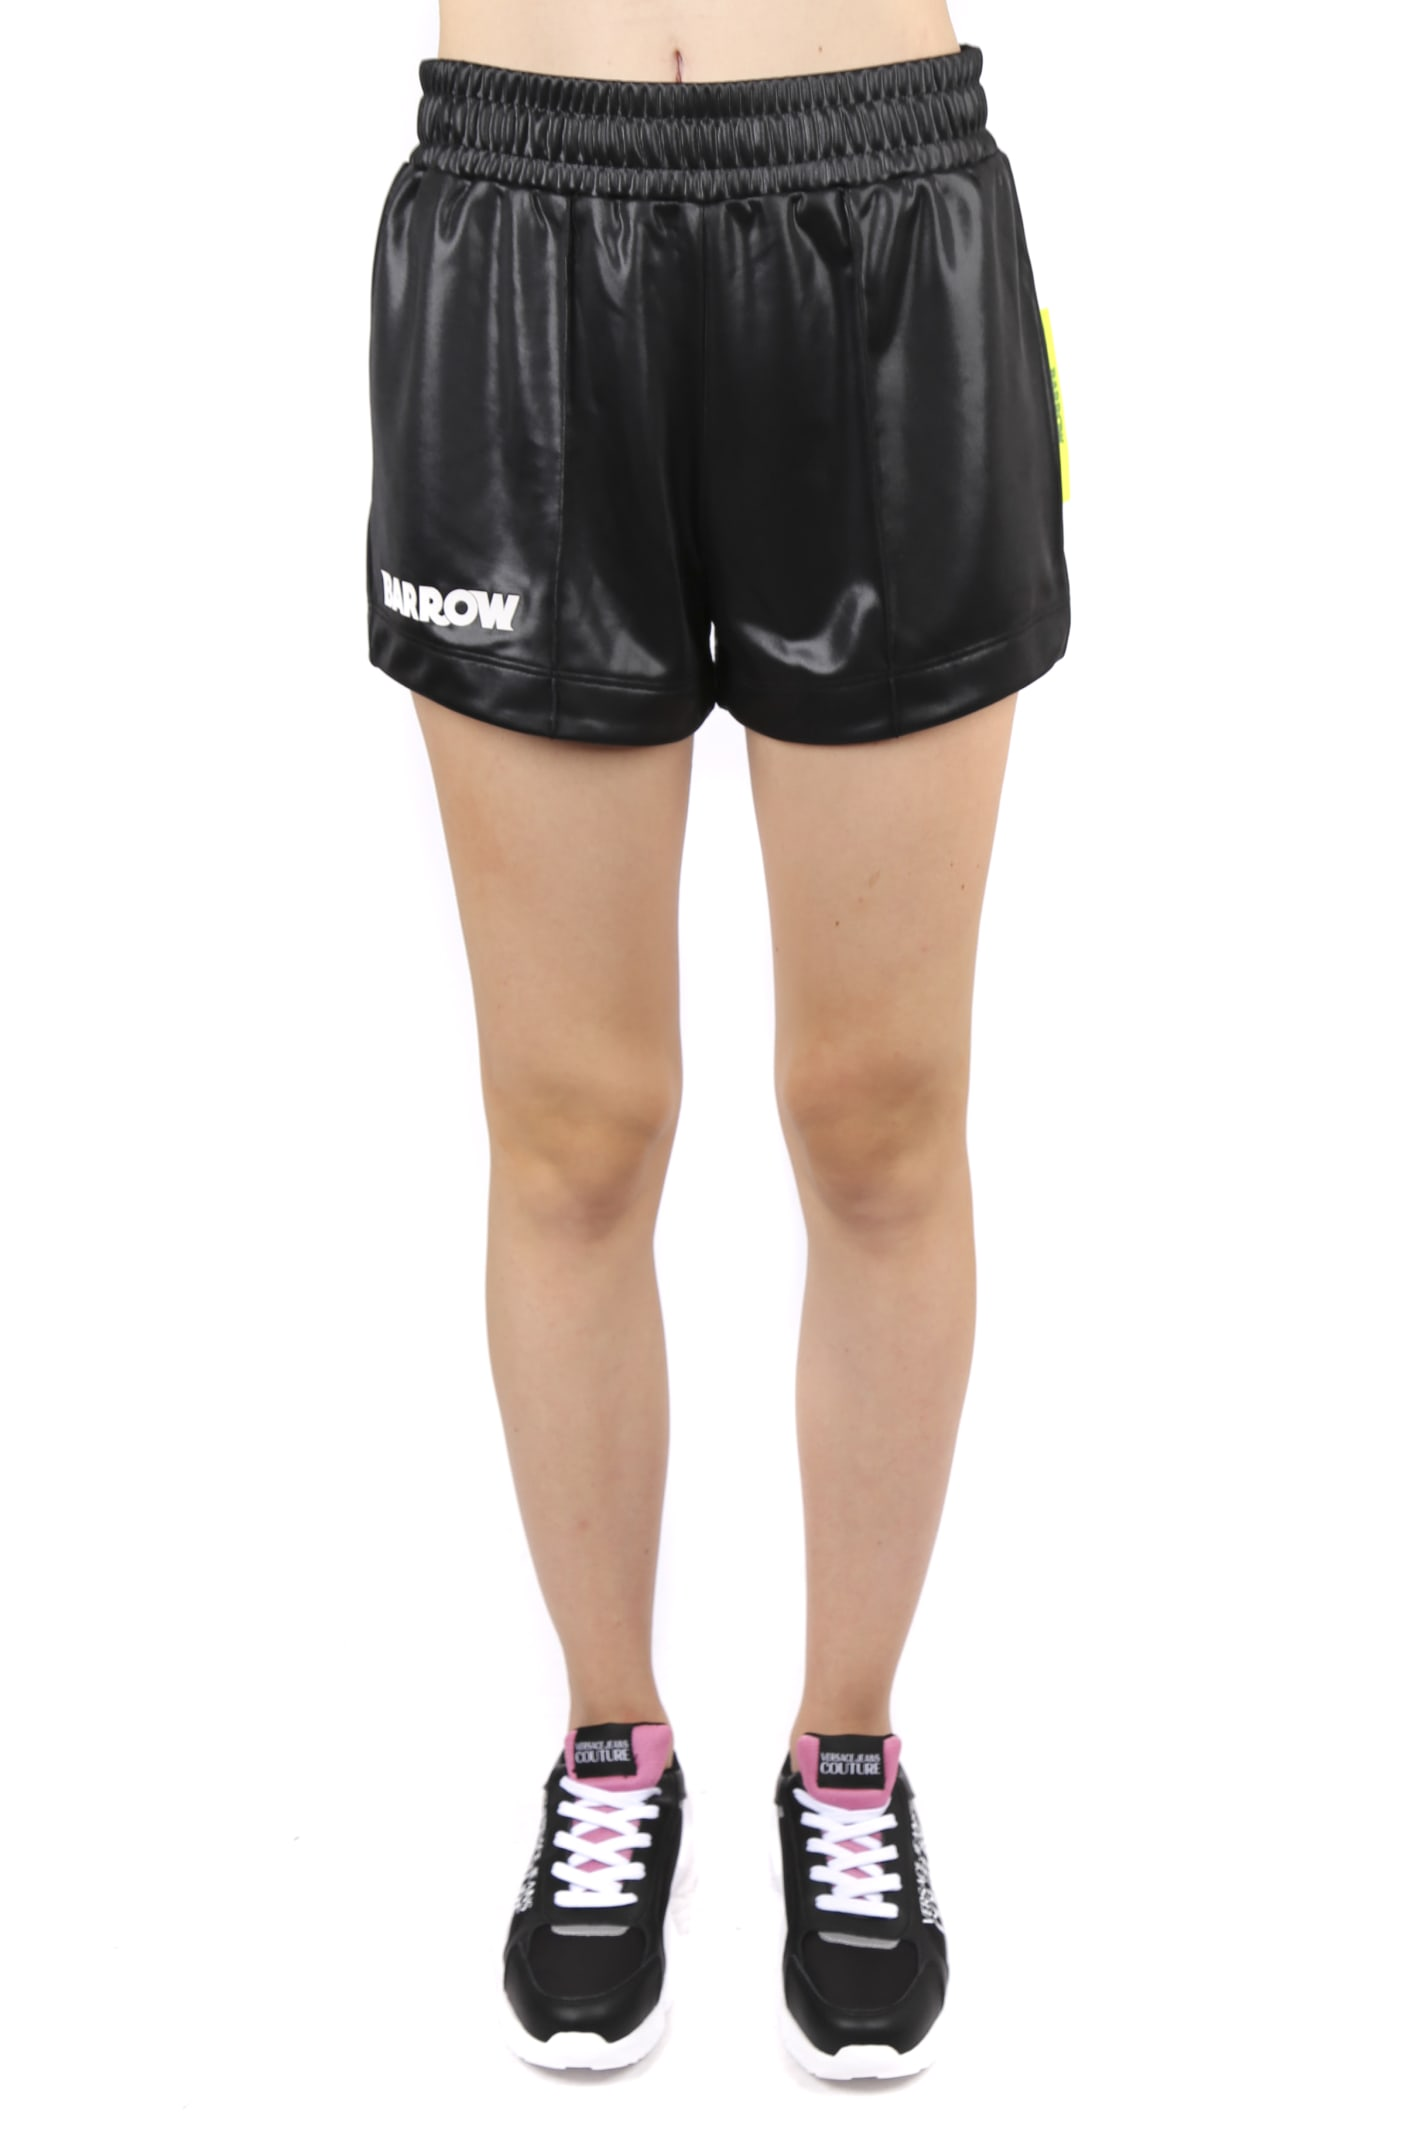 Coach BLACK SHORTS WITH LOGO